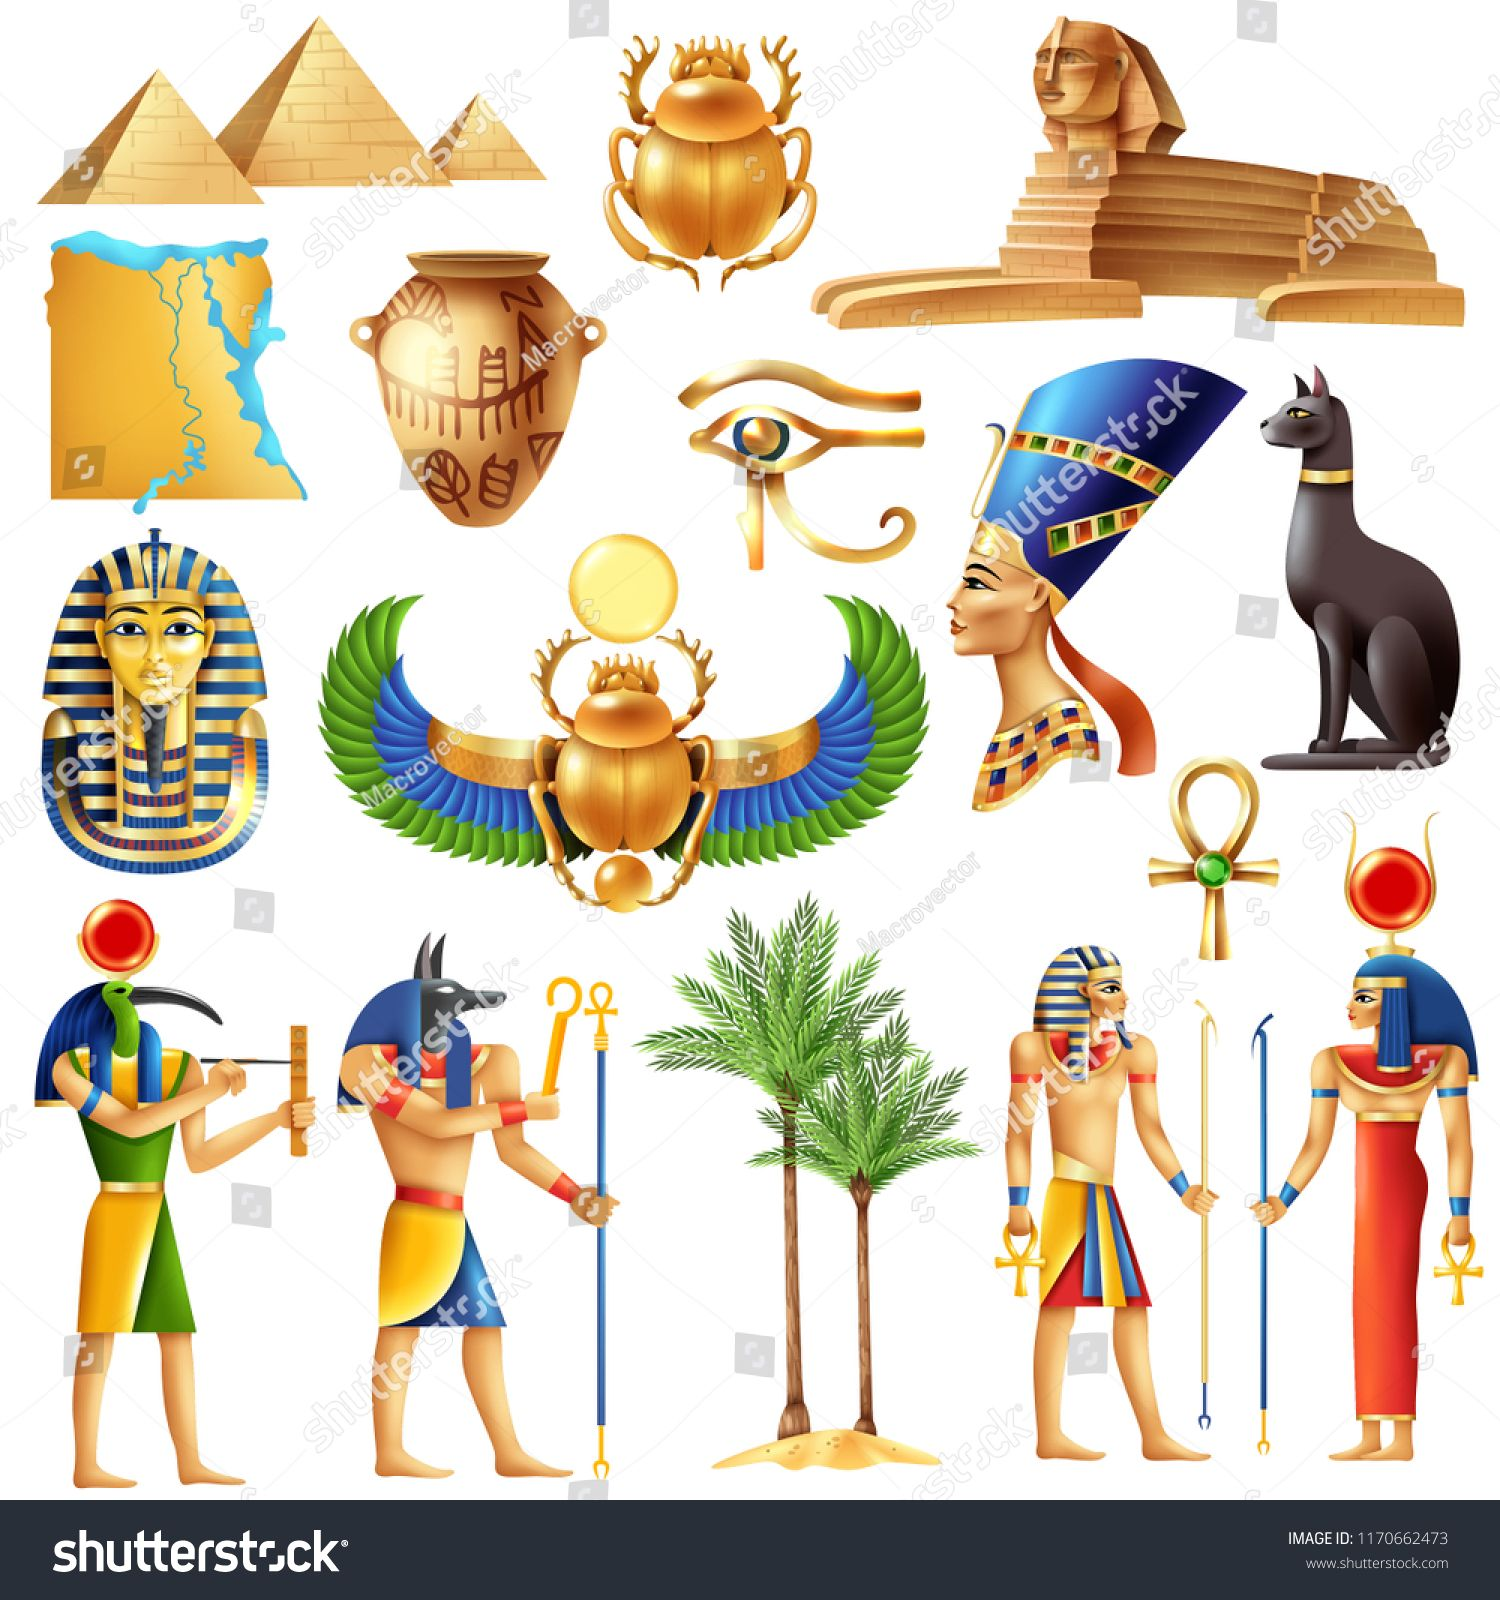 Egypt Symbols Set In Cartoon Style With Ancient Egyptian